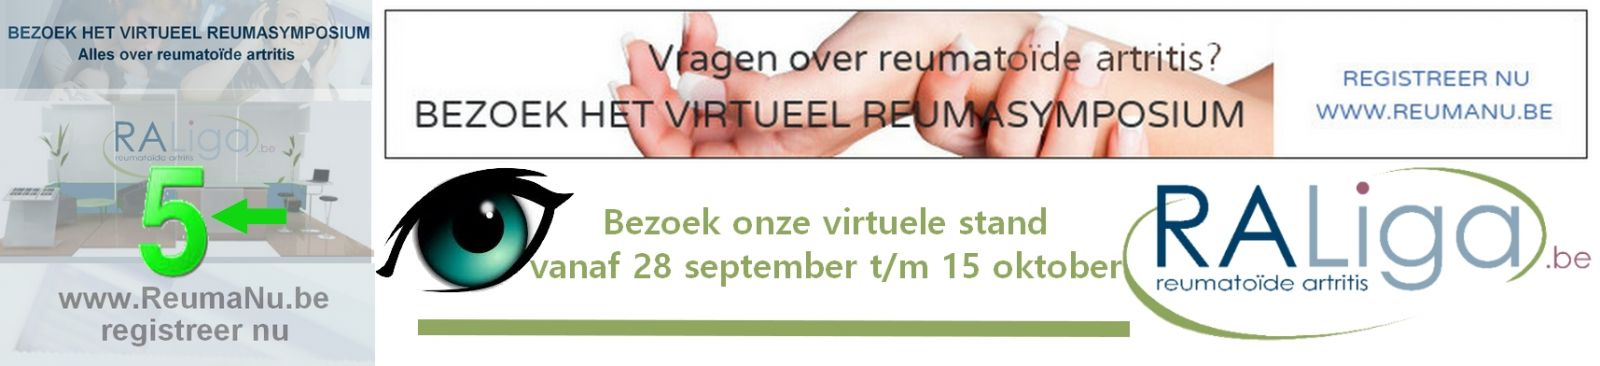 virtueel symposium ReumaNu.be